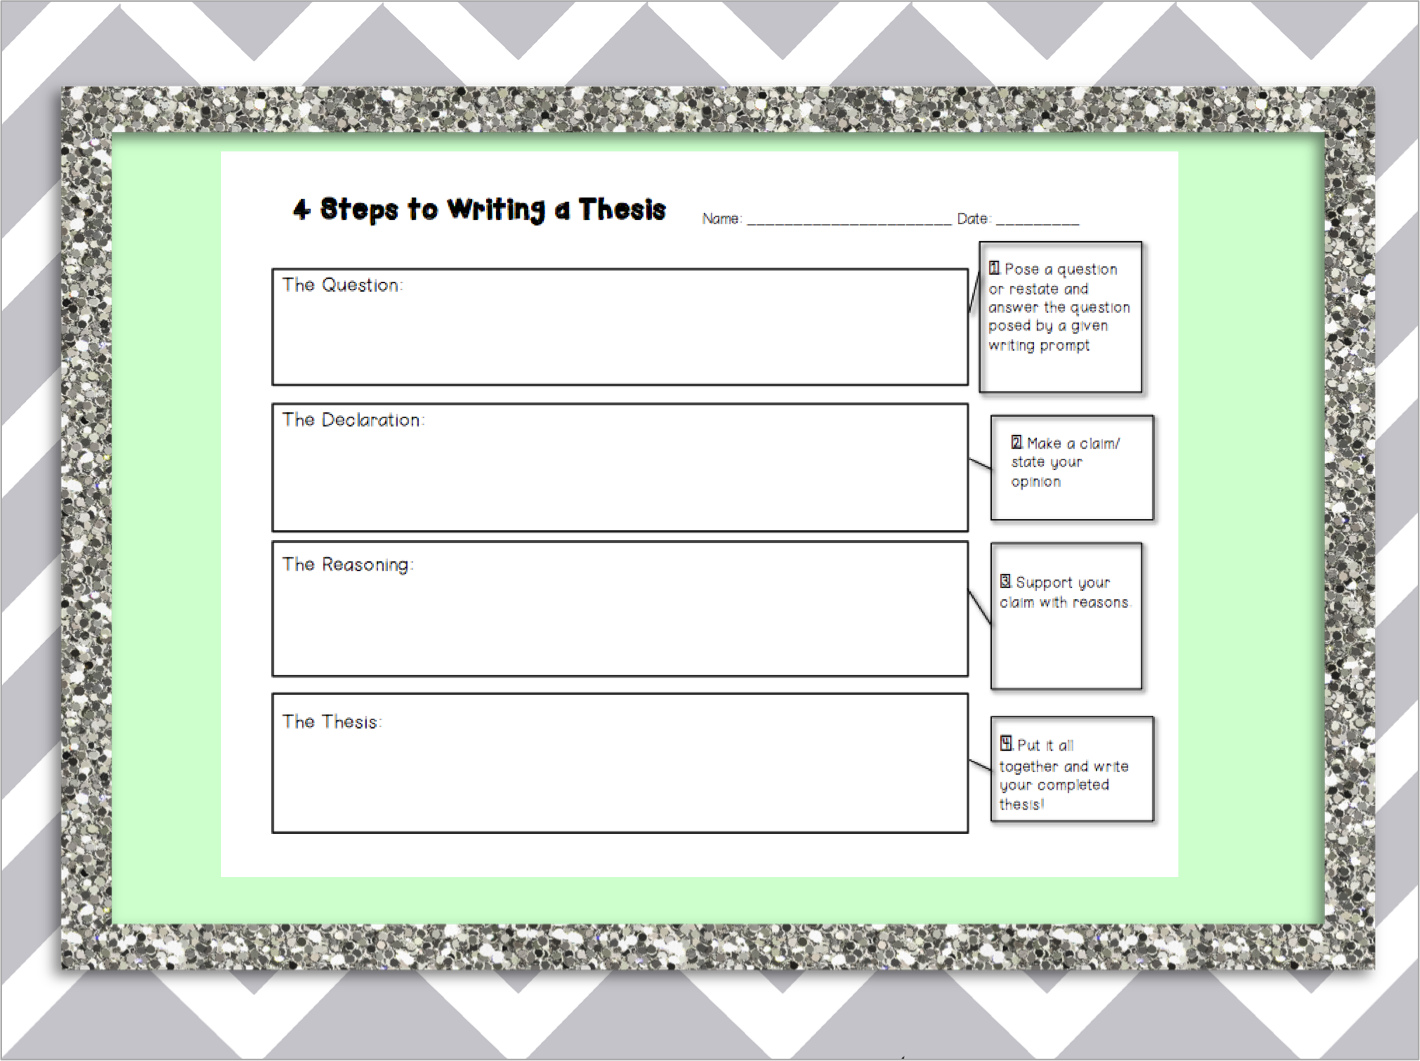 if you would like some additional hep writing a thesis click here